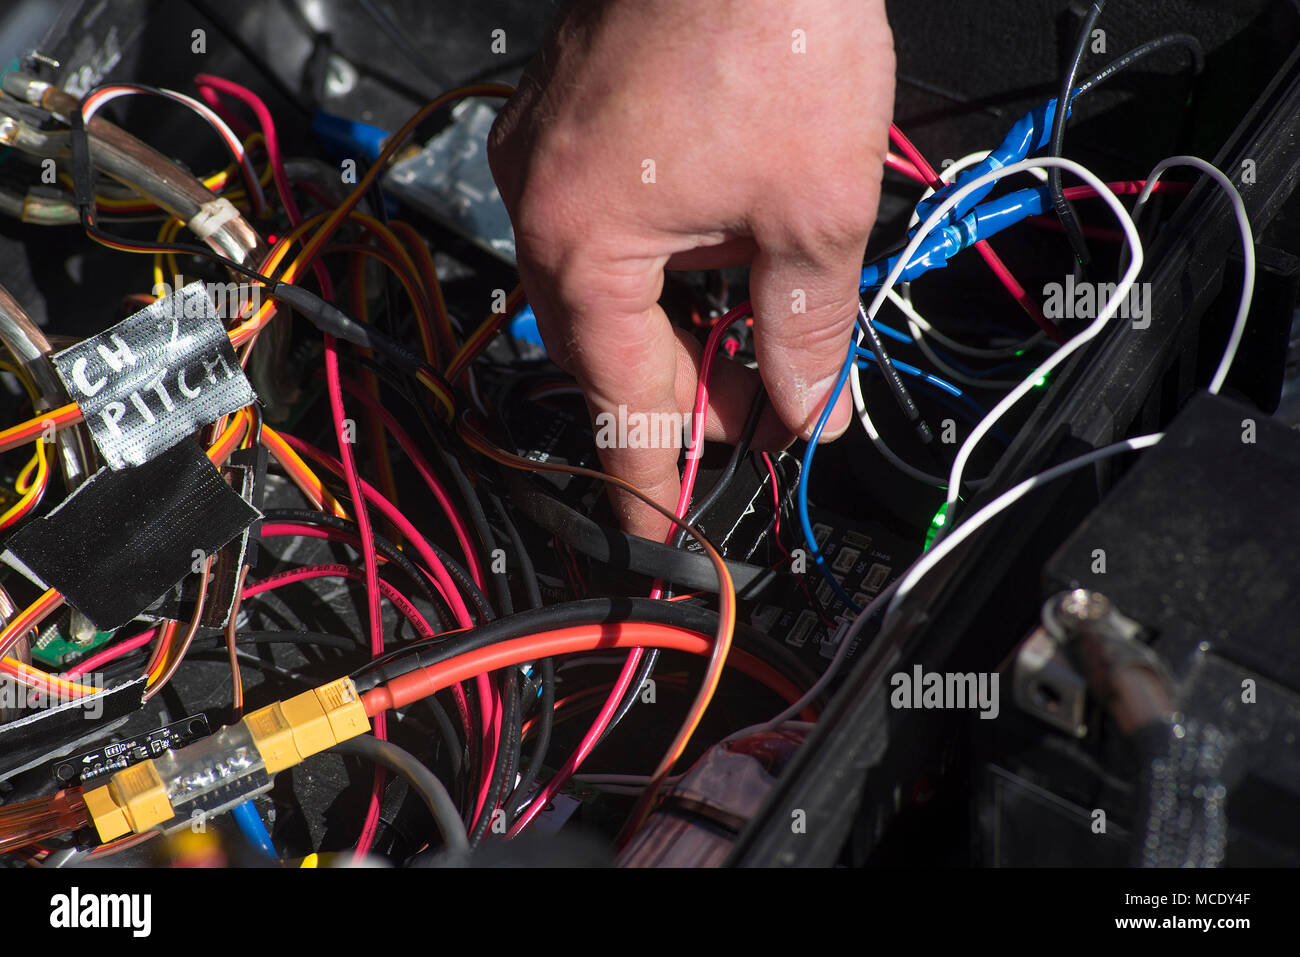 A Competitor Reaches Into Tangle Of Wires Feb 26 2018 While Redstone Wiring For Dummies Trouble Shooting Problem With Radio Controlled Aircraft Prior To The Start